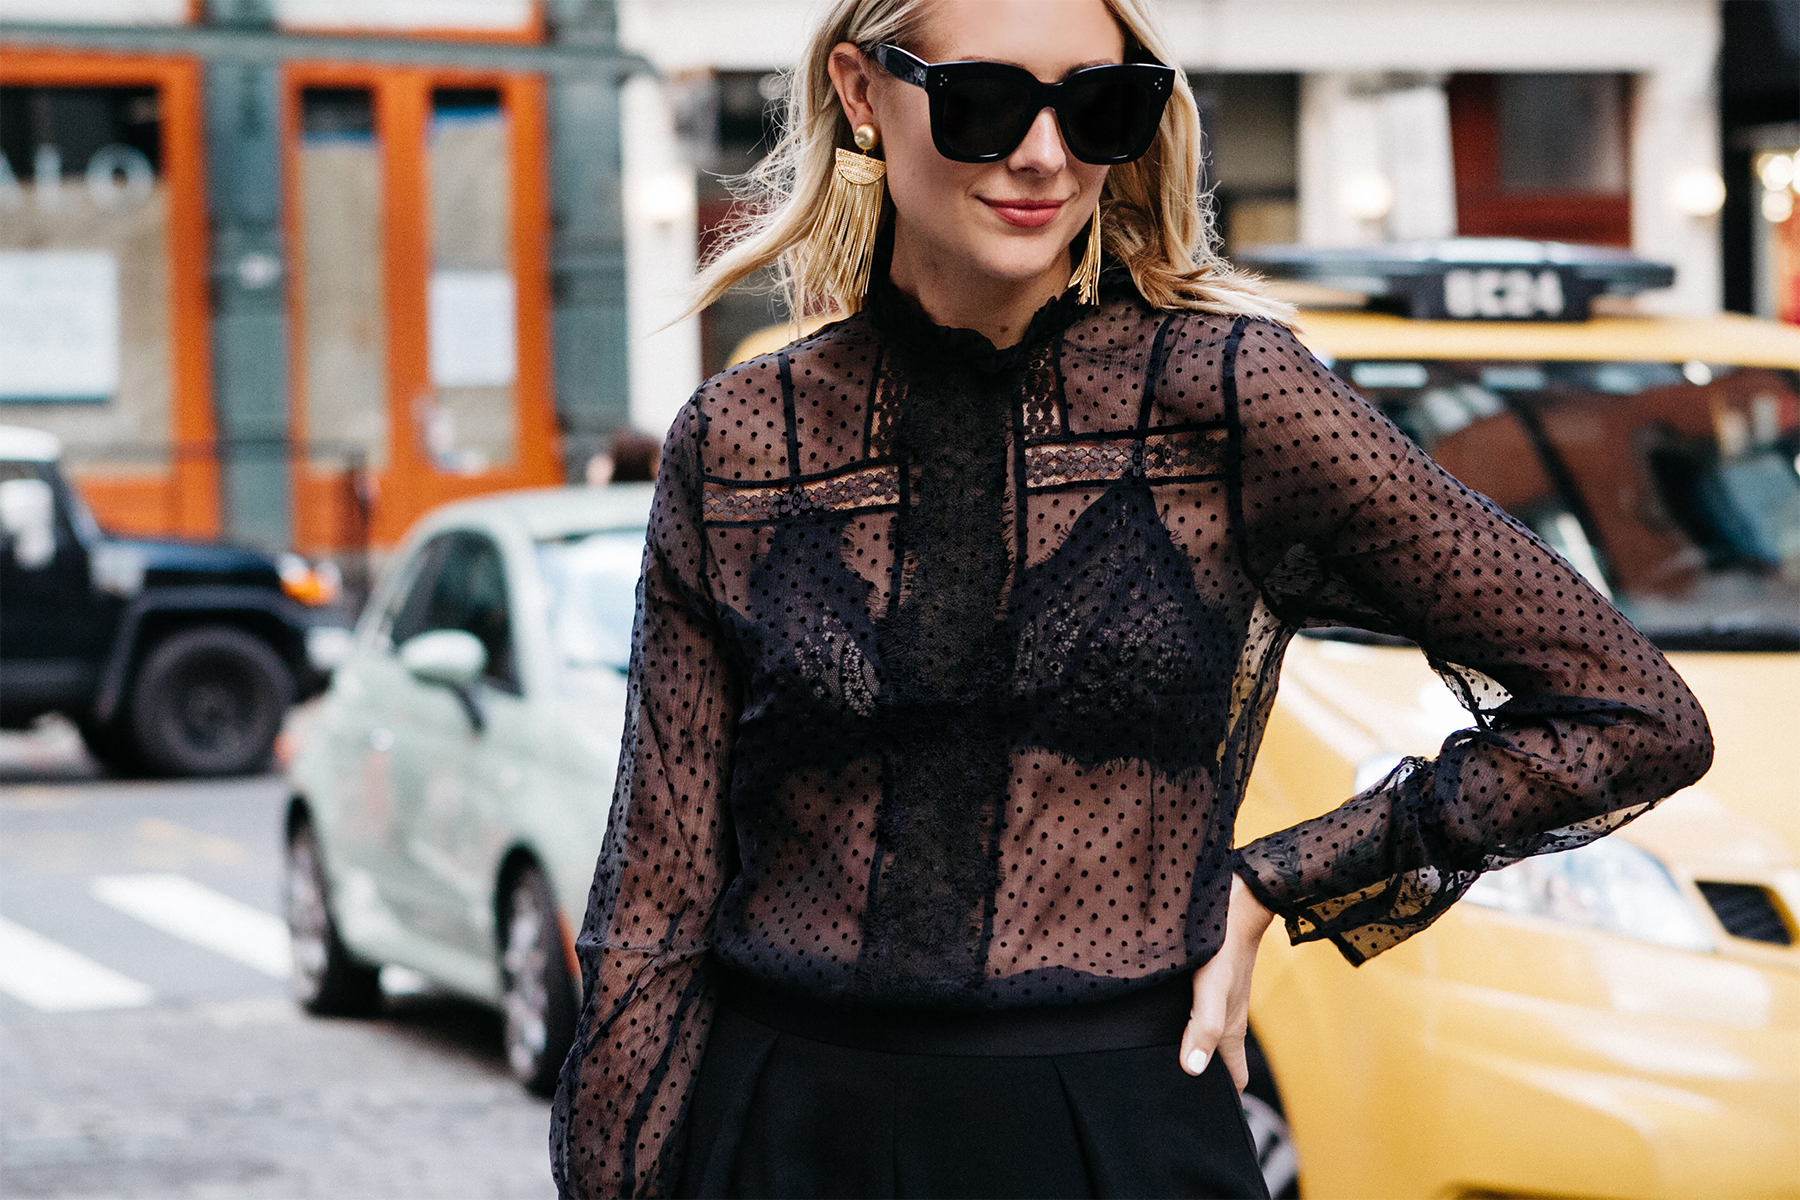 Blonde Woman Wearing Anine Bing Black Lace Top Black Bra Fashion Jackson Dallas Blogger Fashion Blogger Street Style NYFW